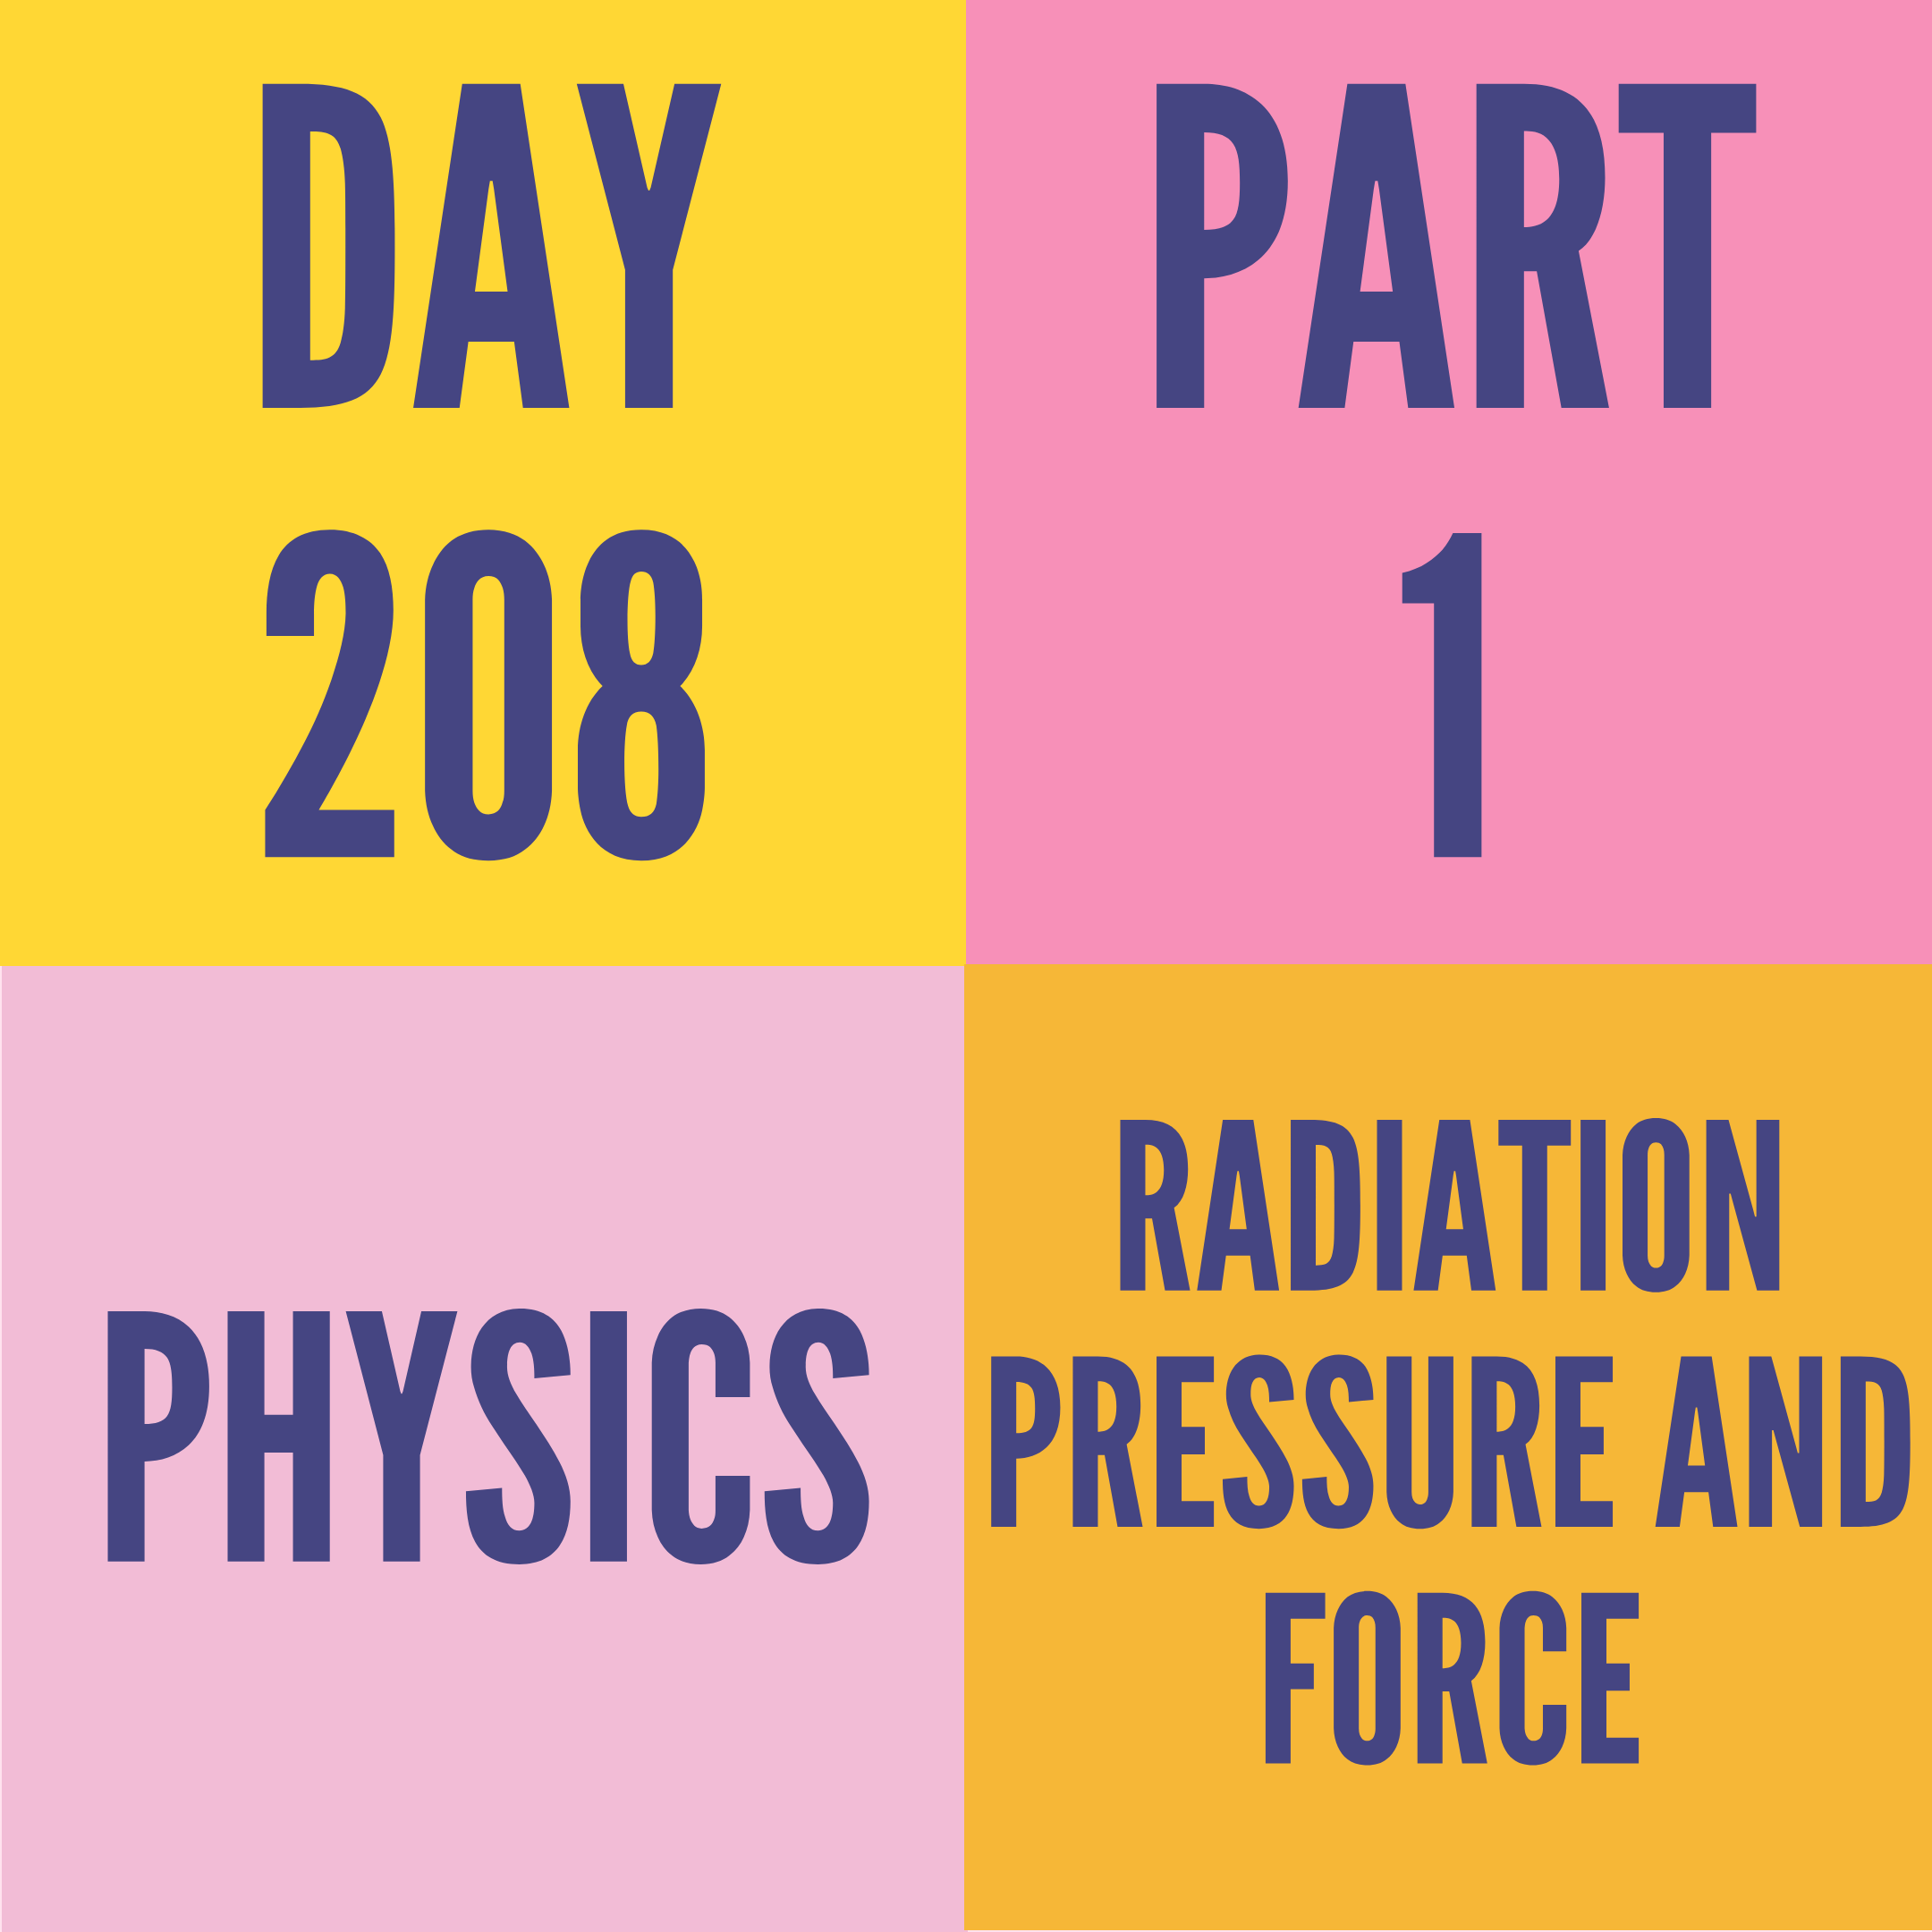 DAY-208 PART-1 RADIATION PRESSURE AND FORCE